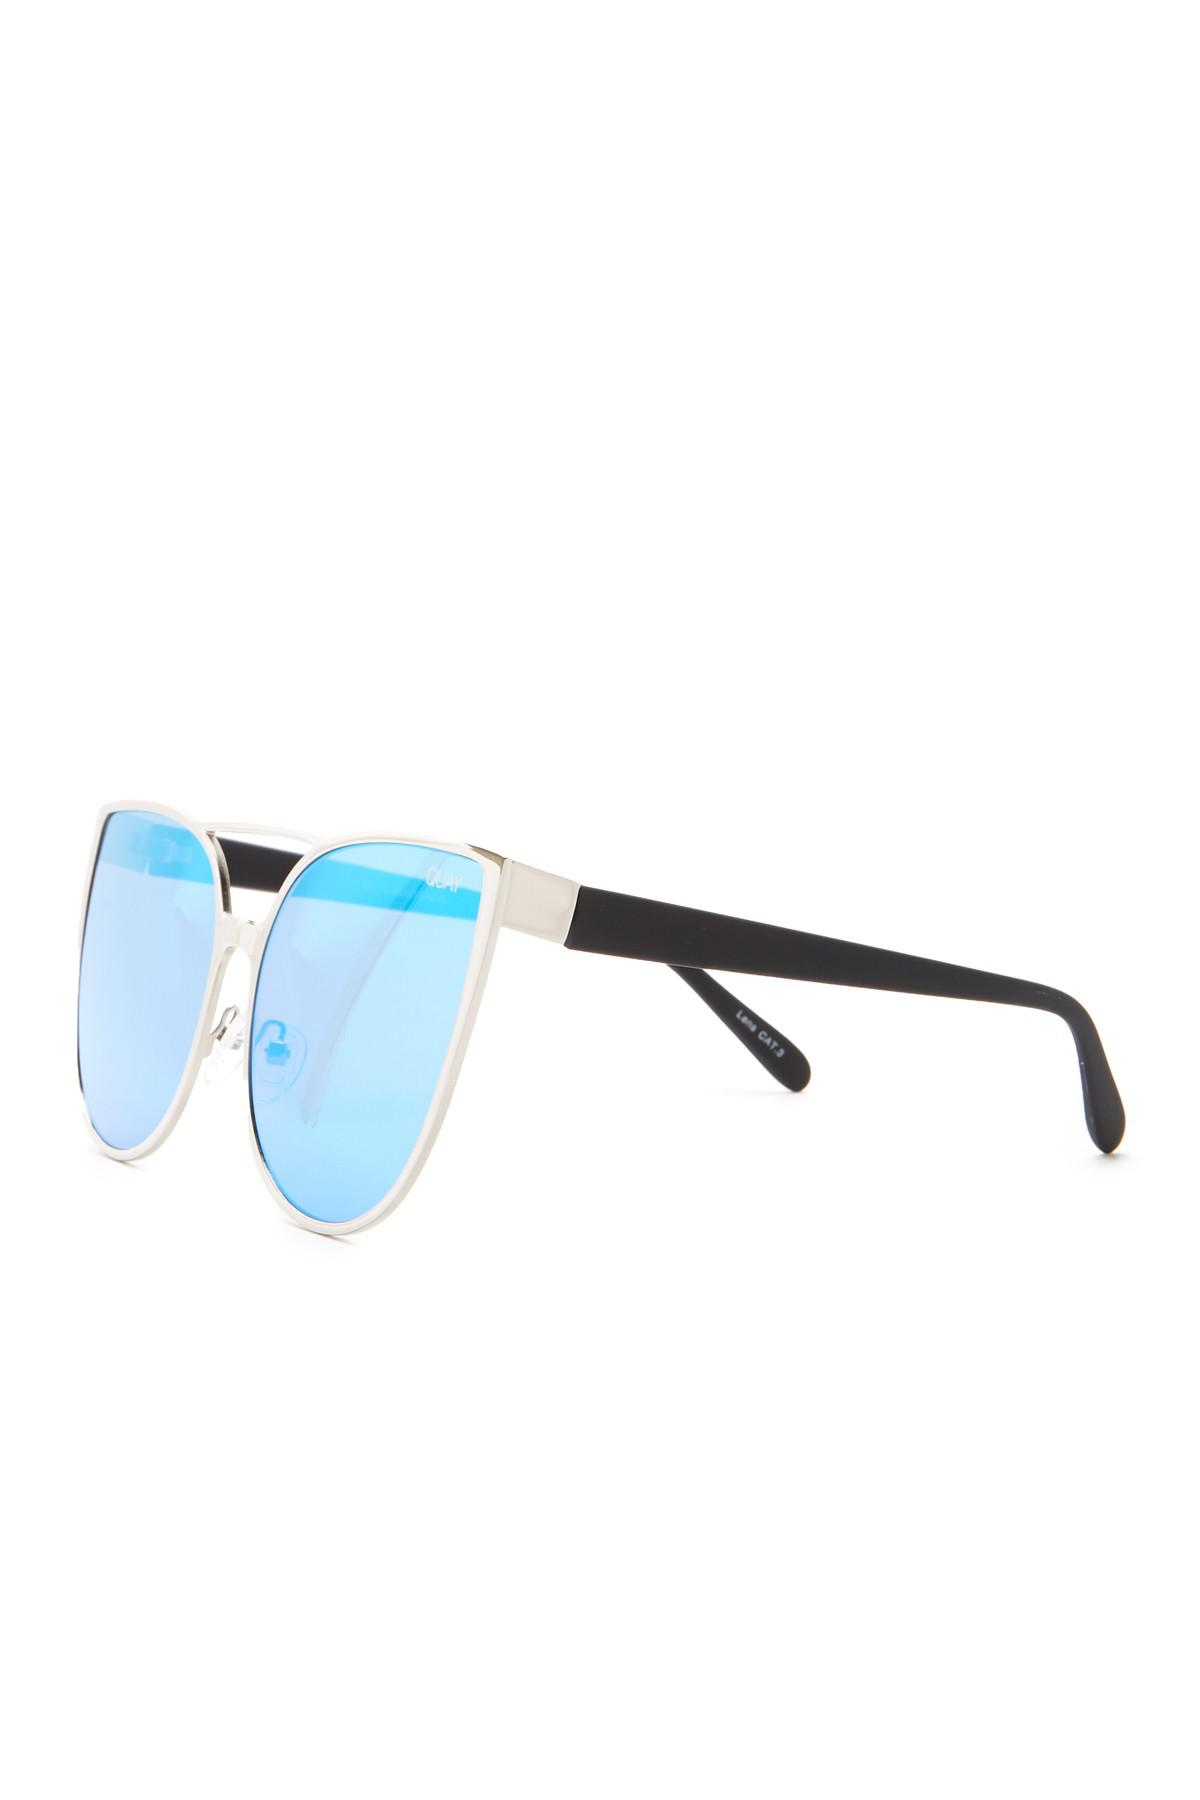 59e890c2fcf22 Lyst - Quay Sorority Princess 55mm Cat Eye Sunglasses in Blue